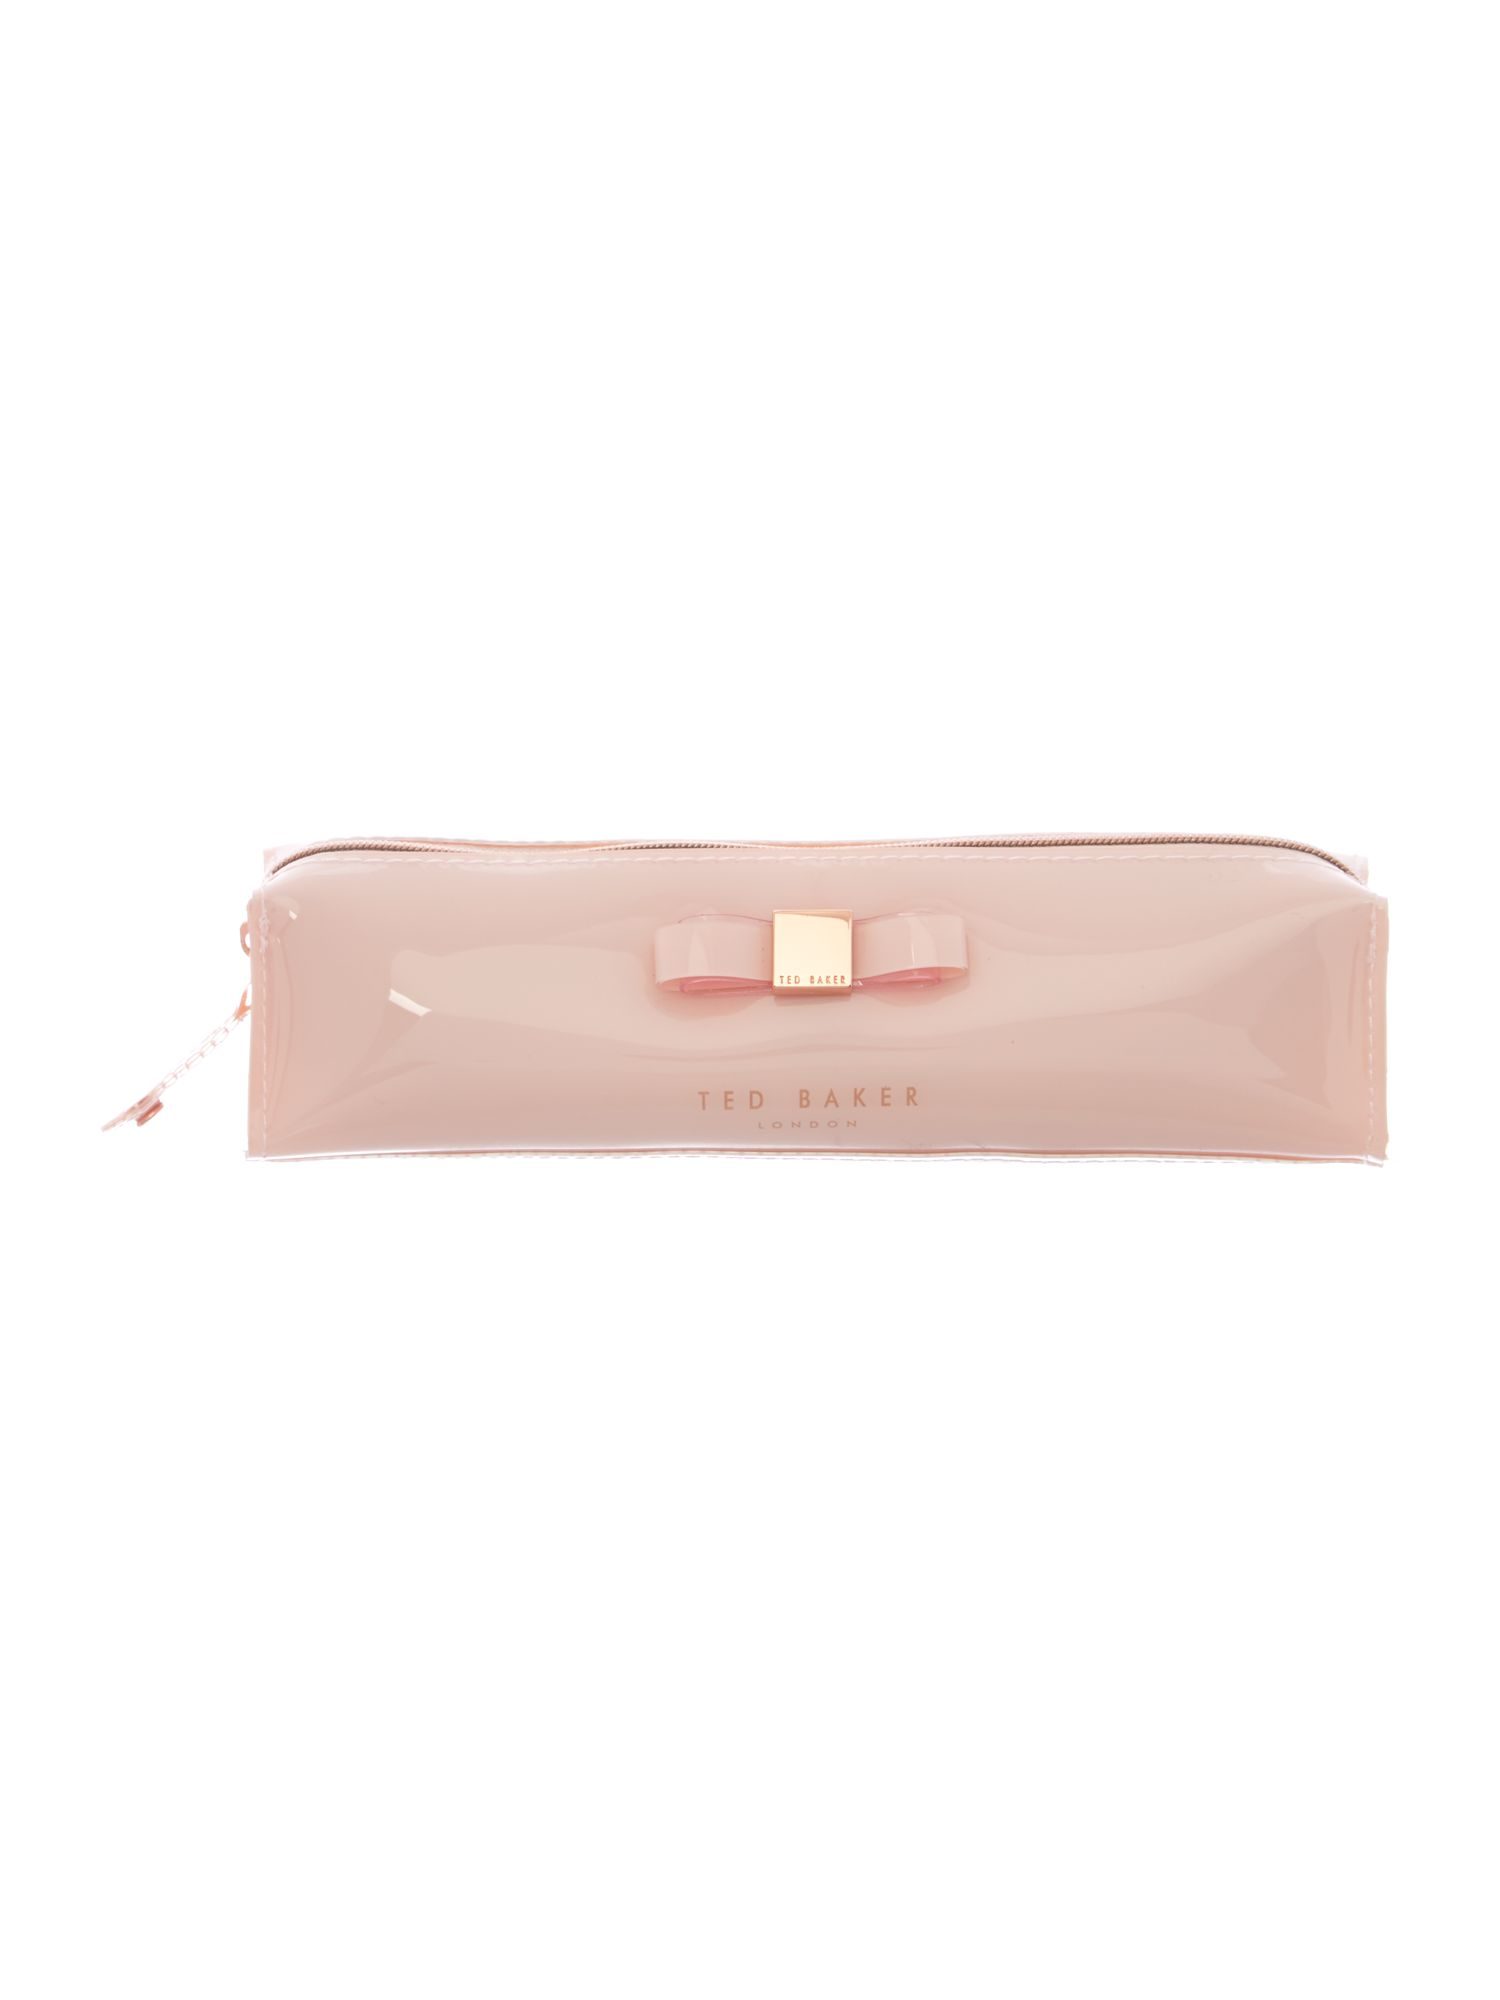 Nude pencil case